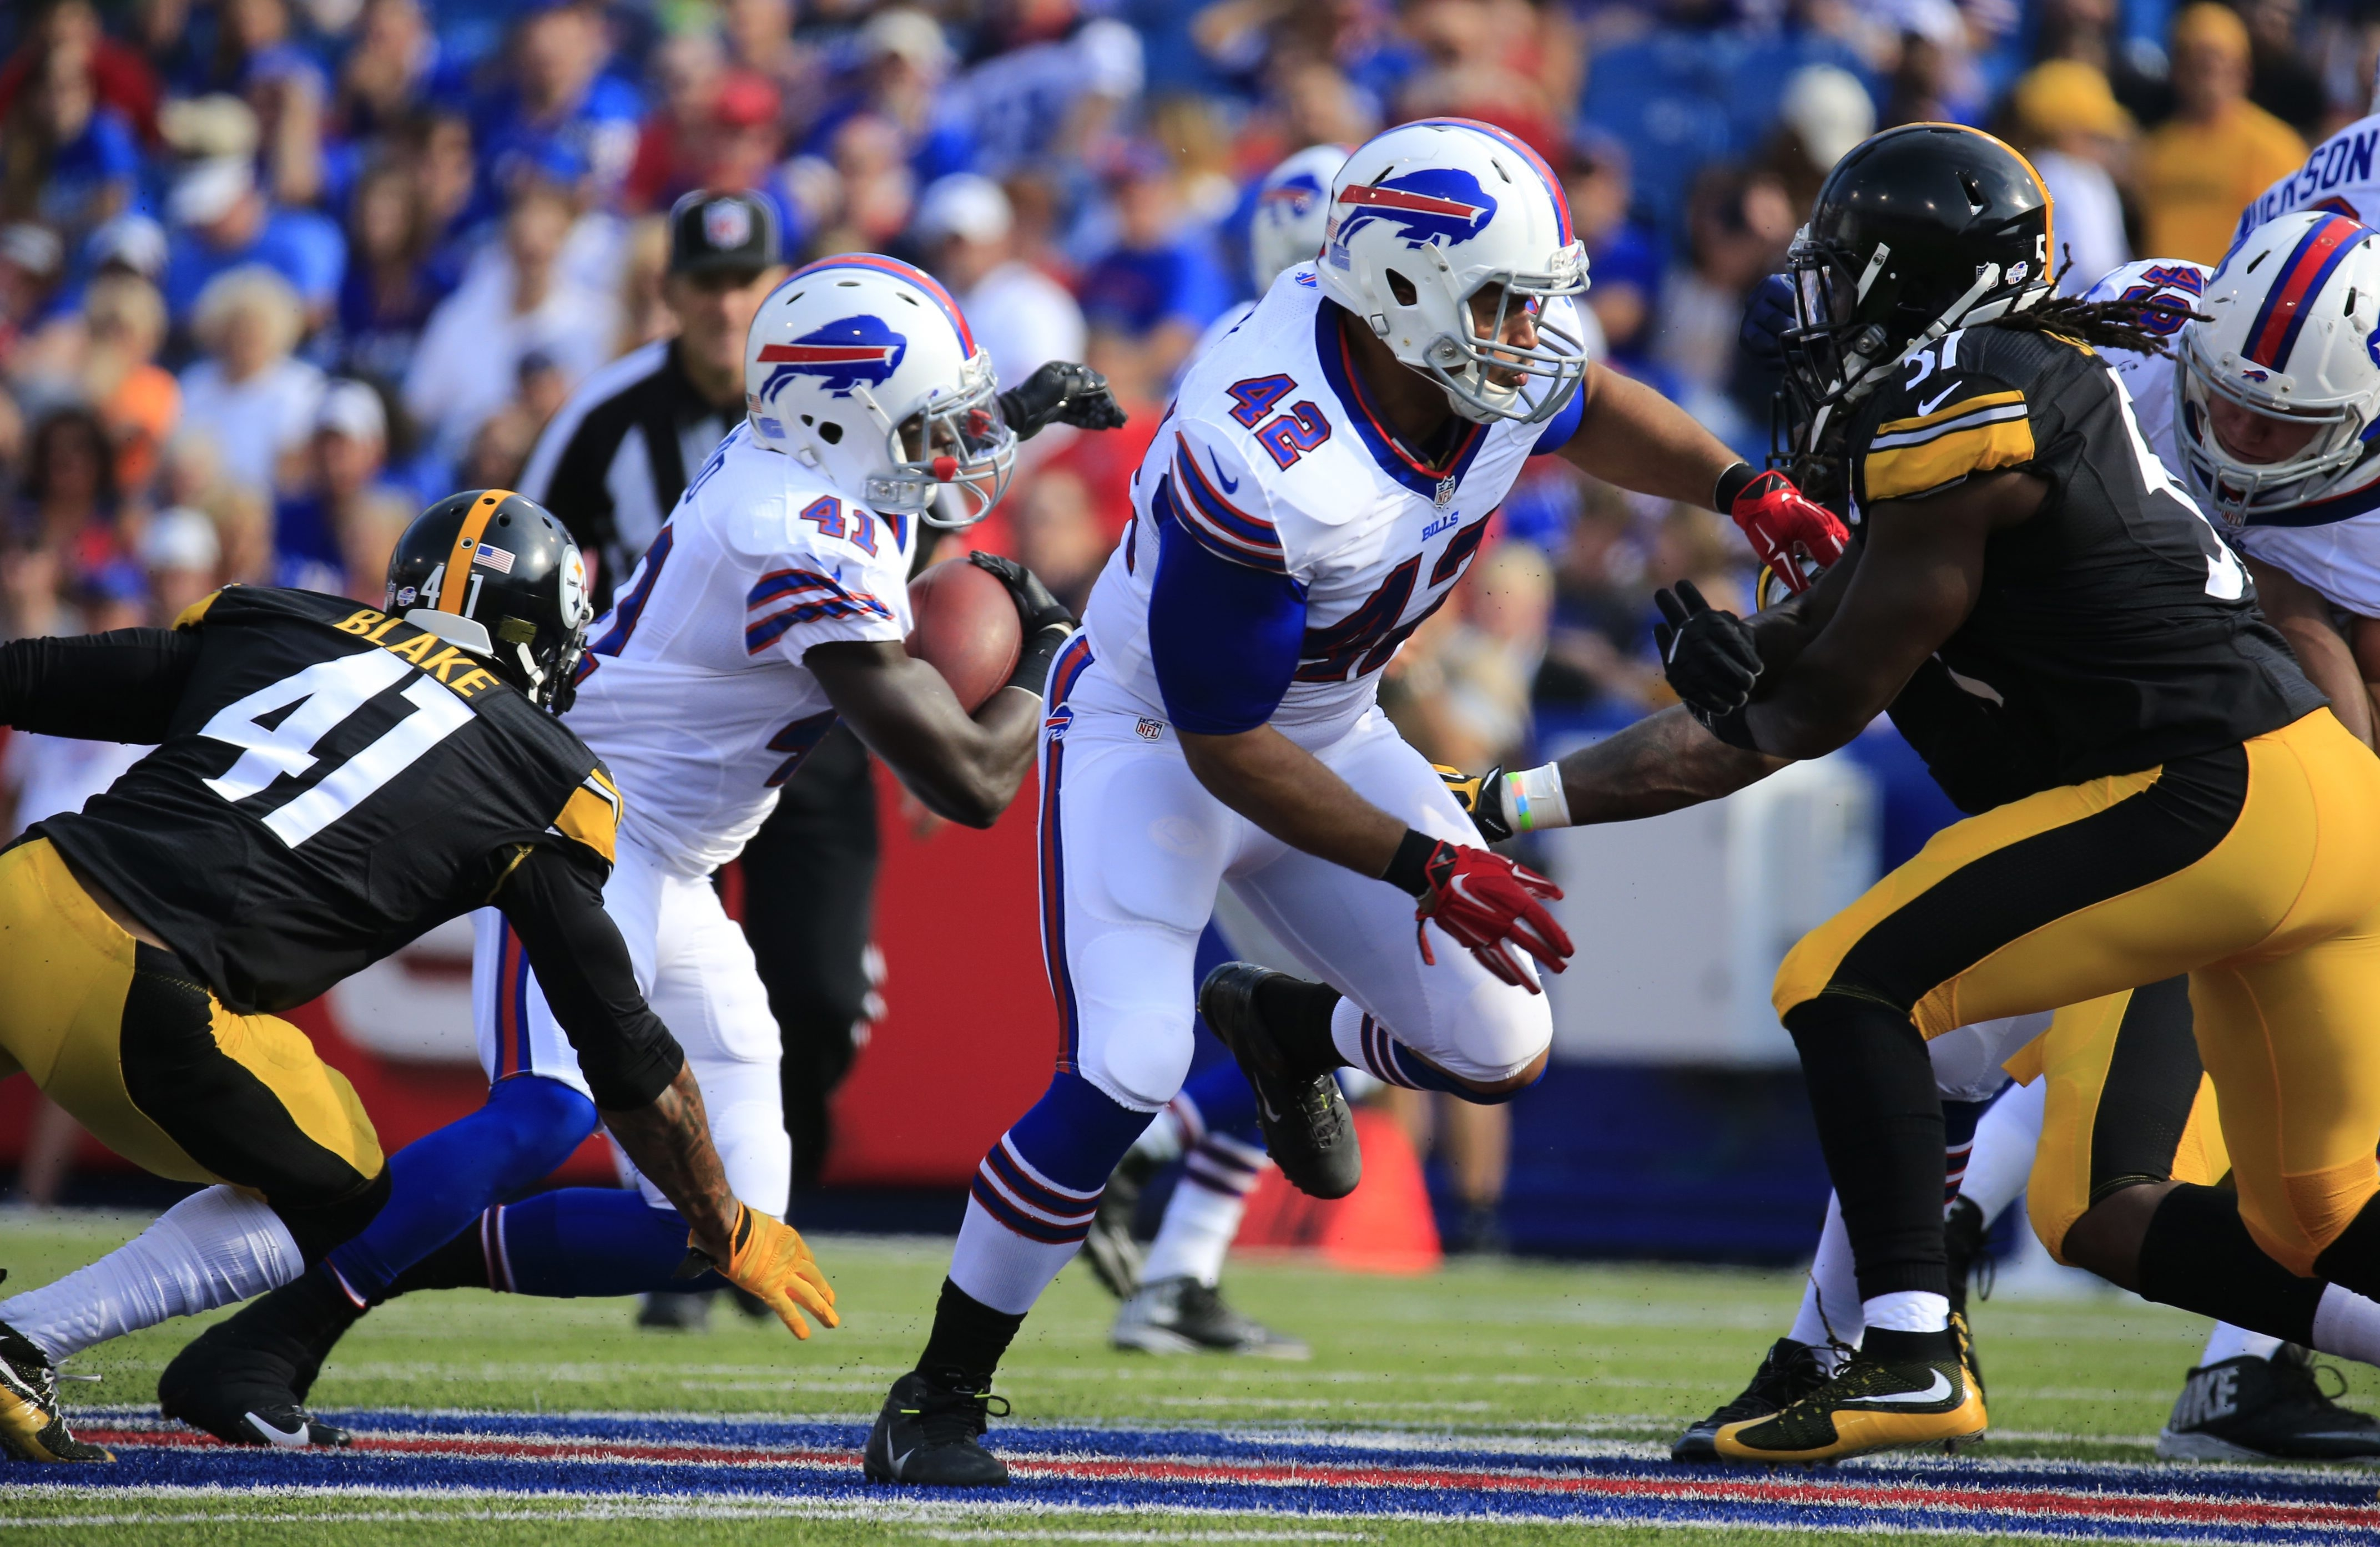 Jerome Felton paved the way for the No. 1 rushing attack in the NFL in 2016. (Harry Scull Jr./Buffalo News)